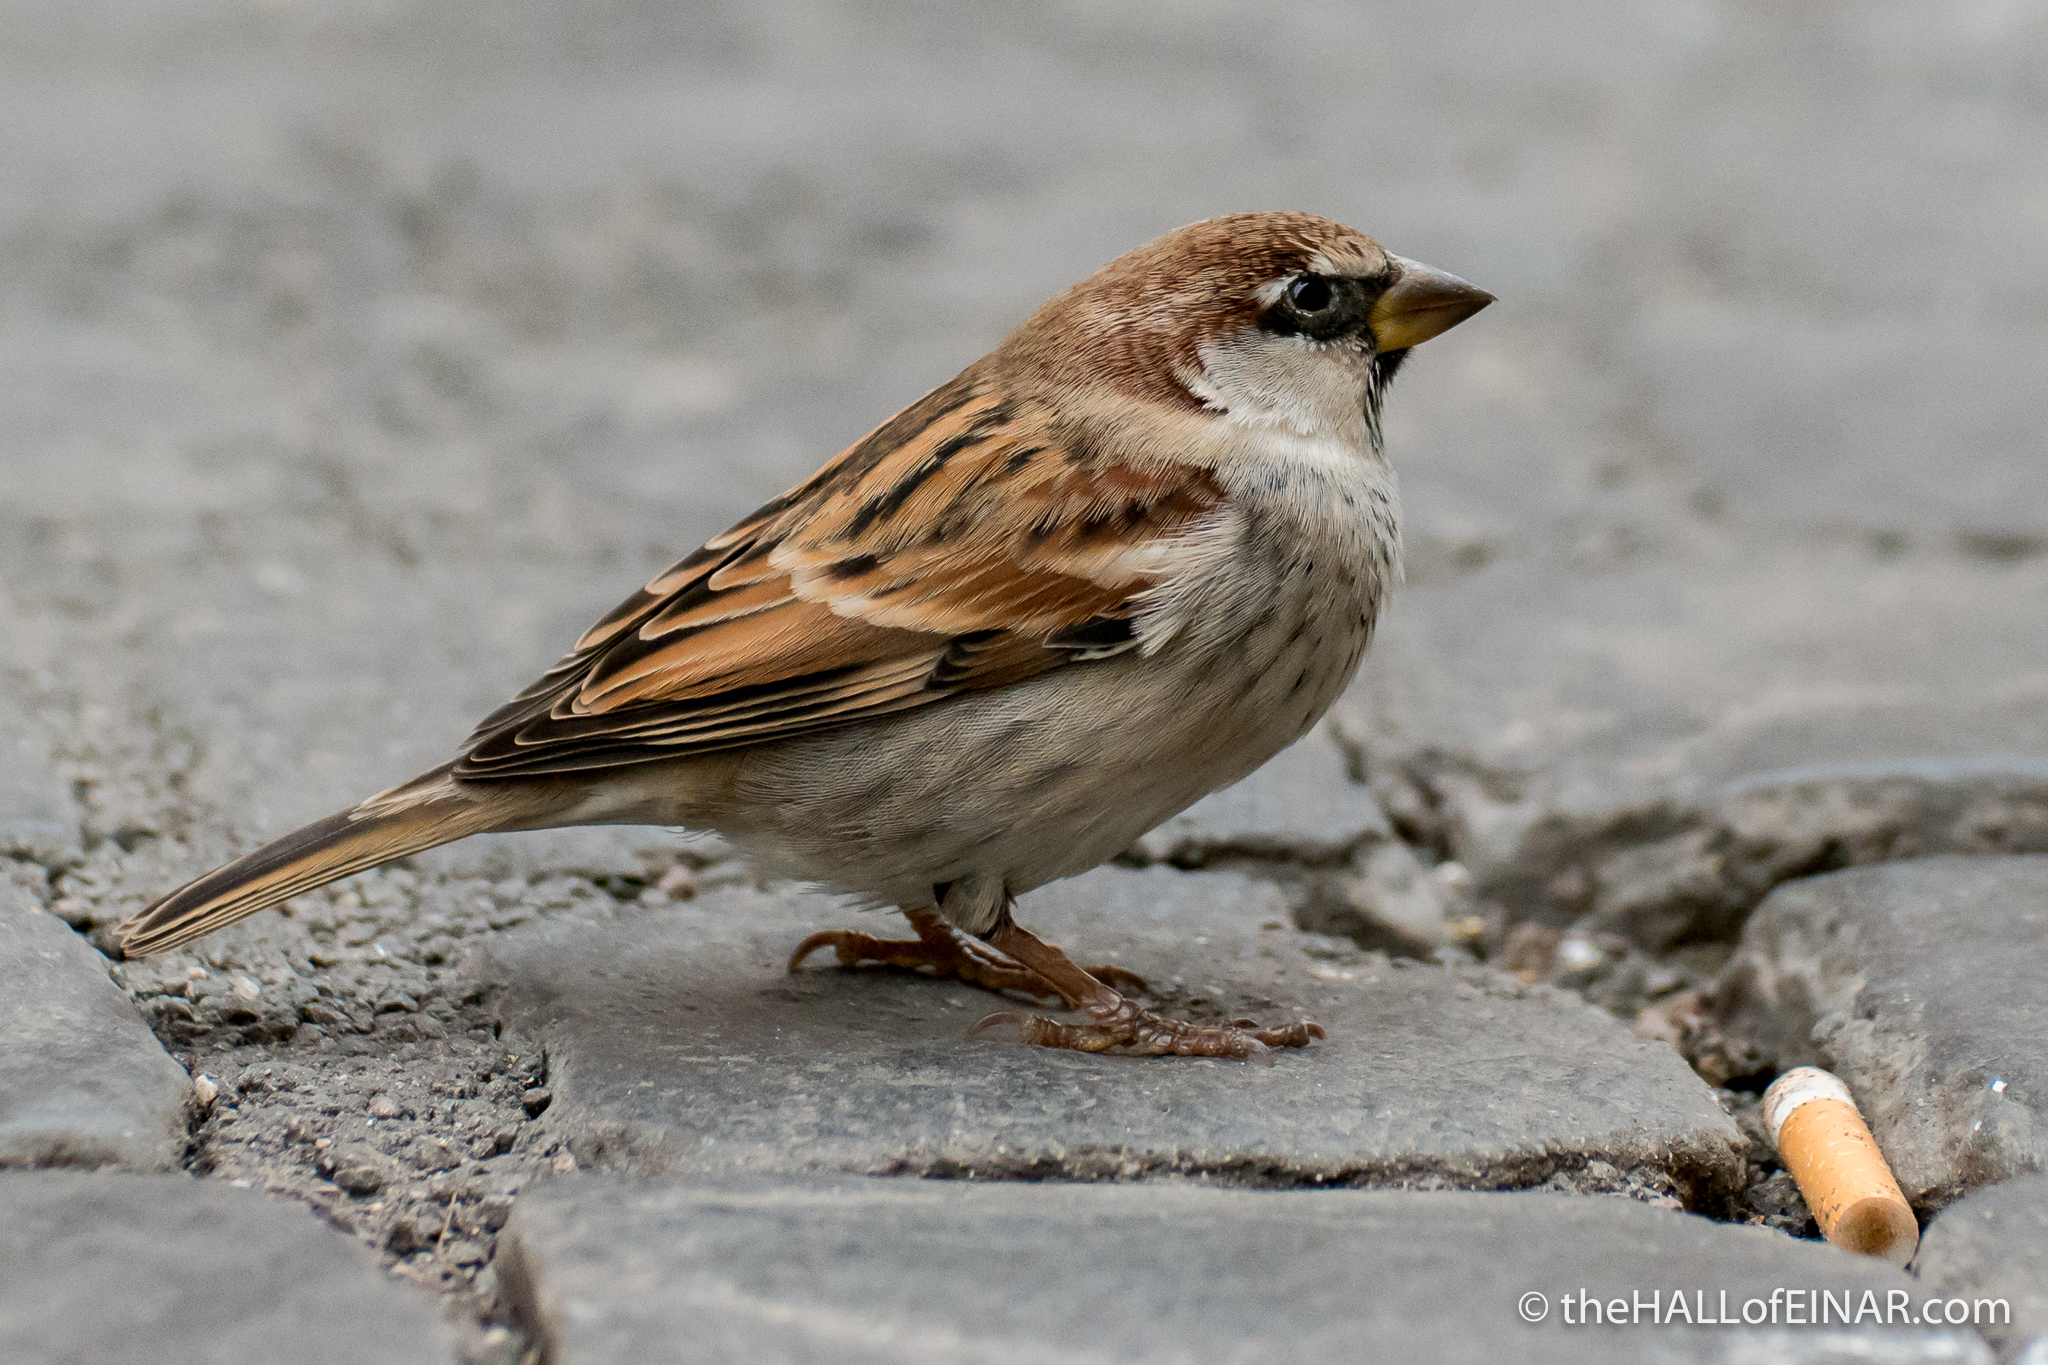 Italian Sparrows - The Hall of Einar - photograph (c) David Bailey (not the)